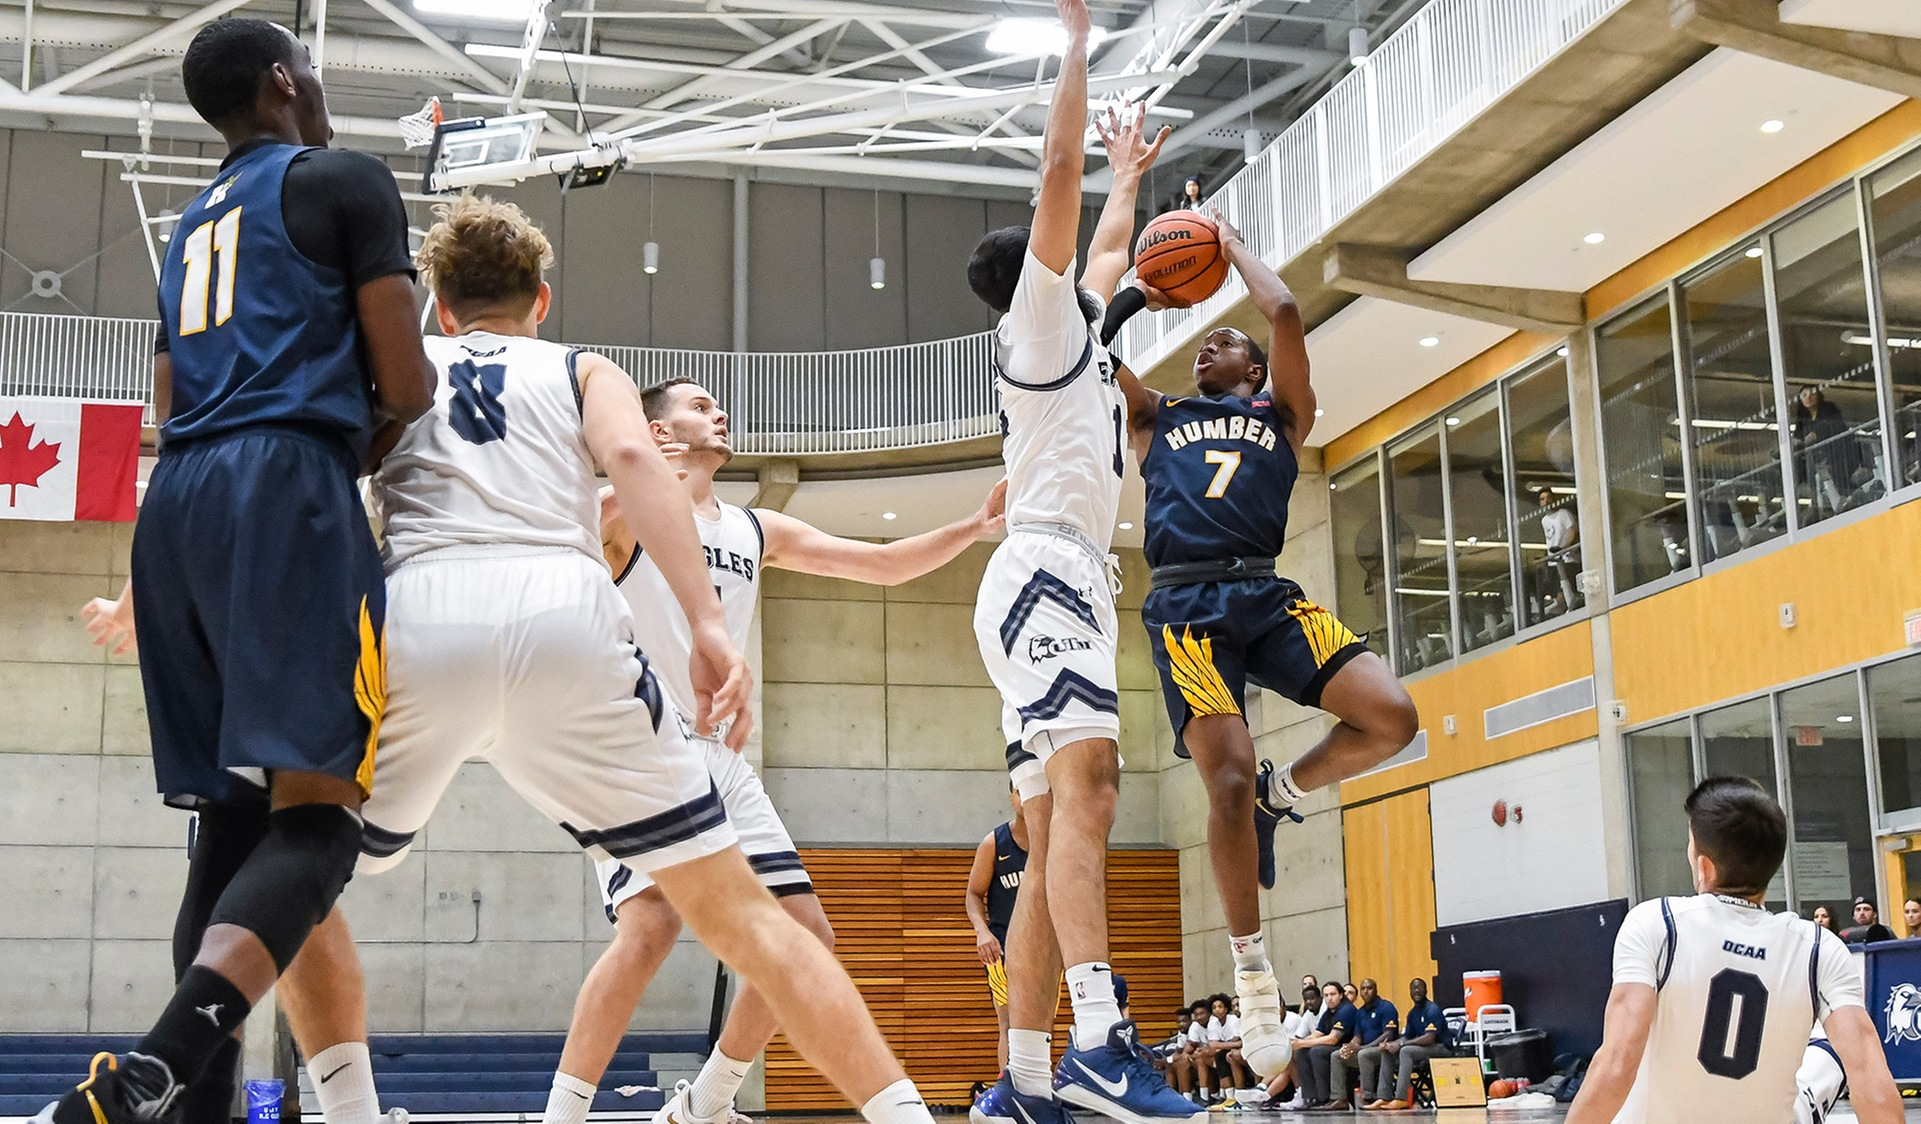 CASCART'S 29 POINTS LIFTS No. 4 HUMBER PAST UTM, 91-77